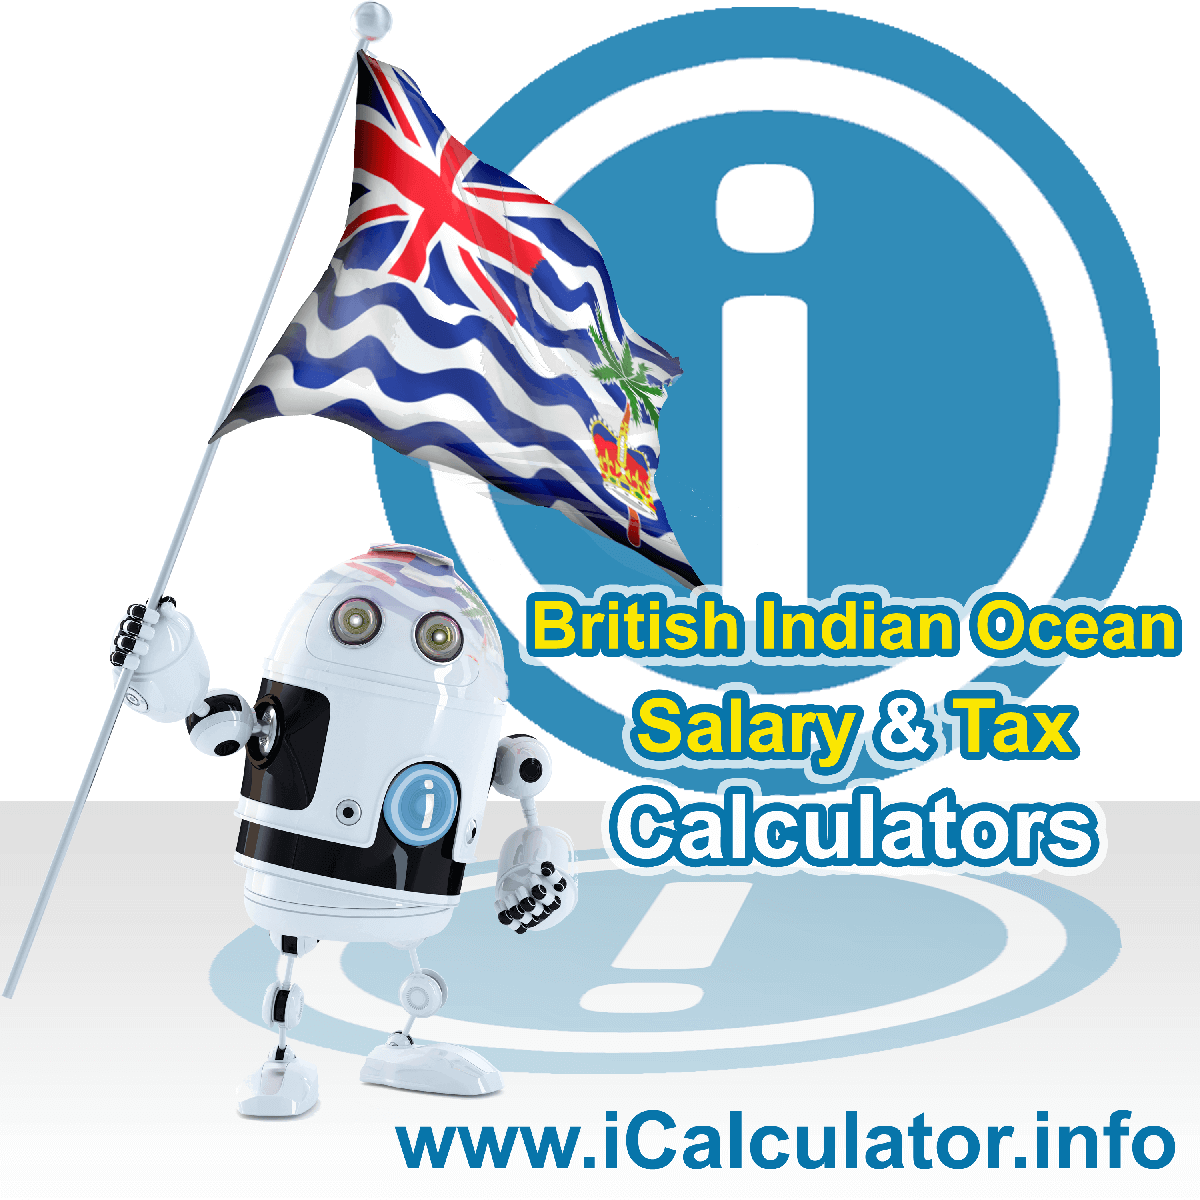 British Indian Ocean Territory Tax Calculator. This image shows the British Indian Ocean Territory flag and information relating to the tax formula for the British Indian Ocean Territory Salary Calculator